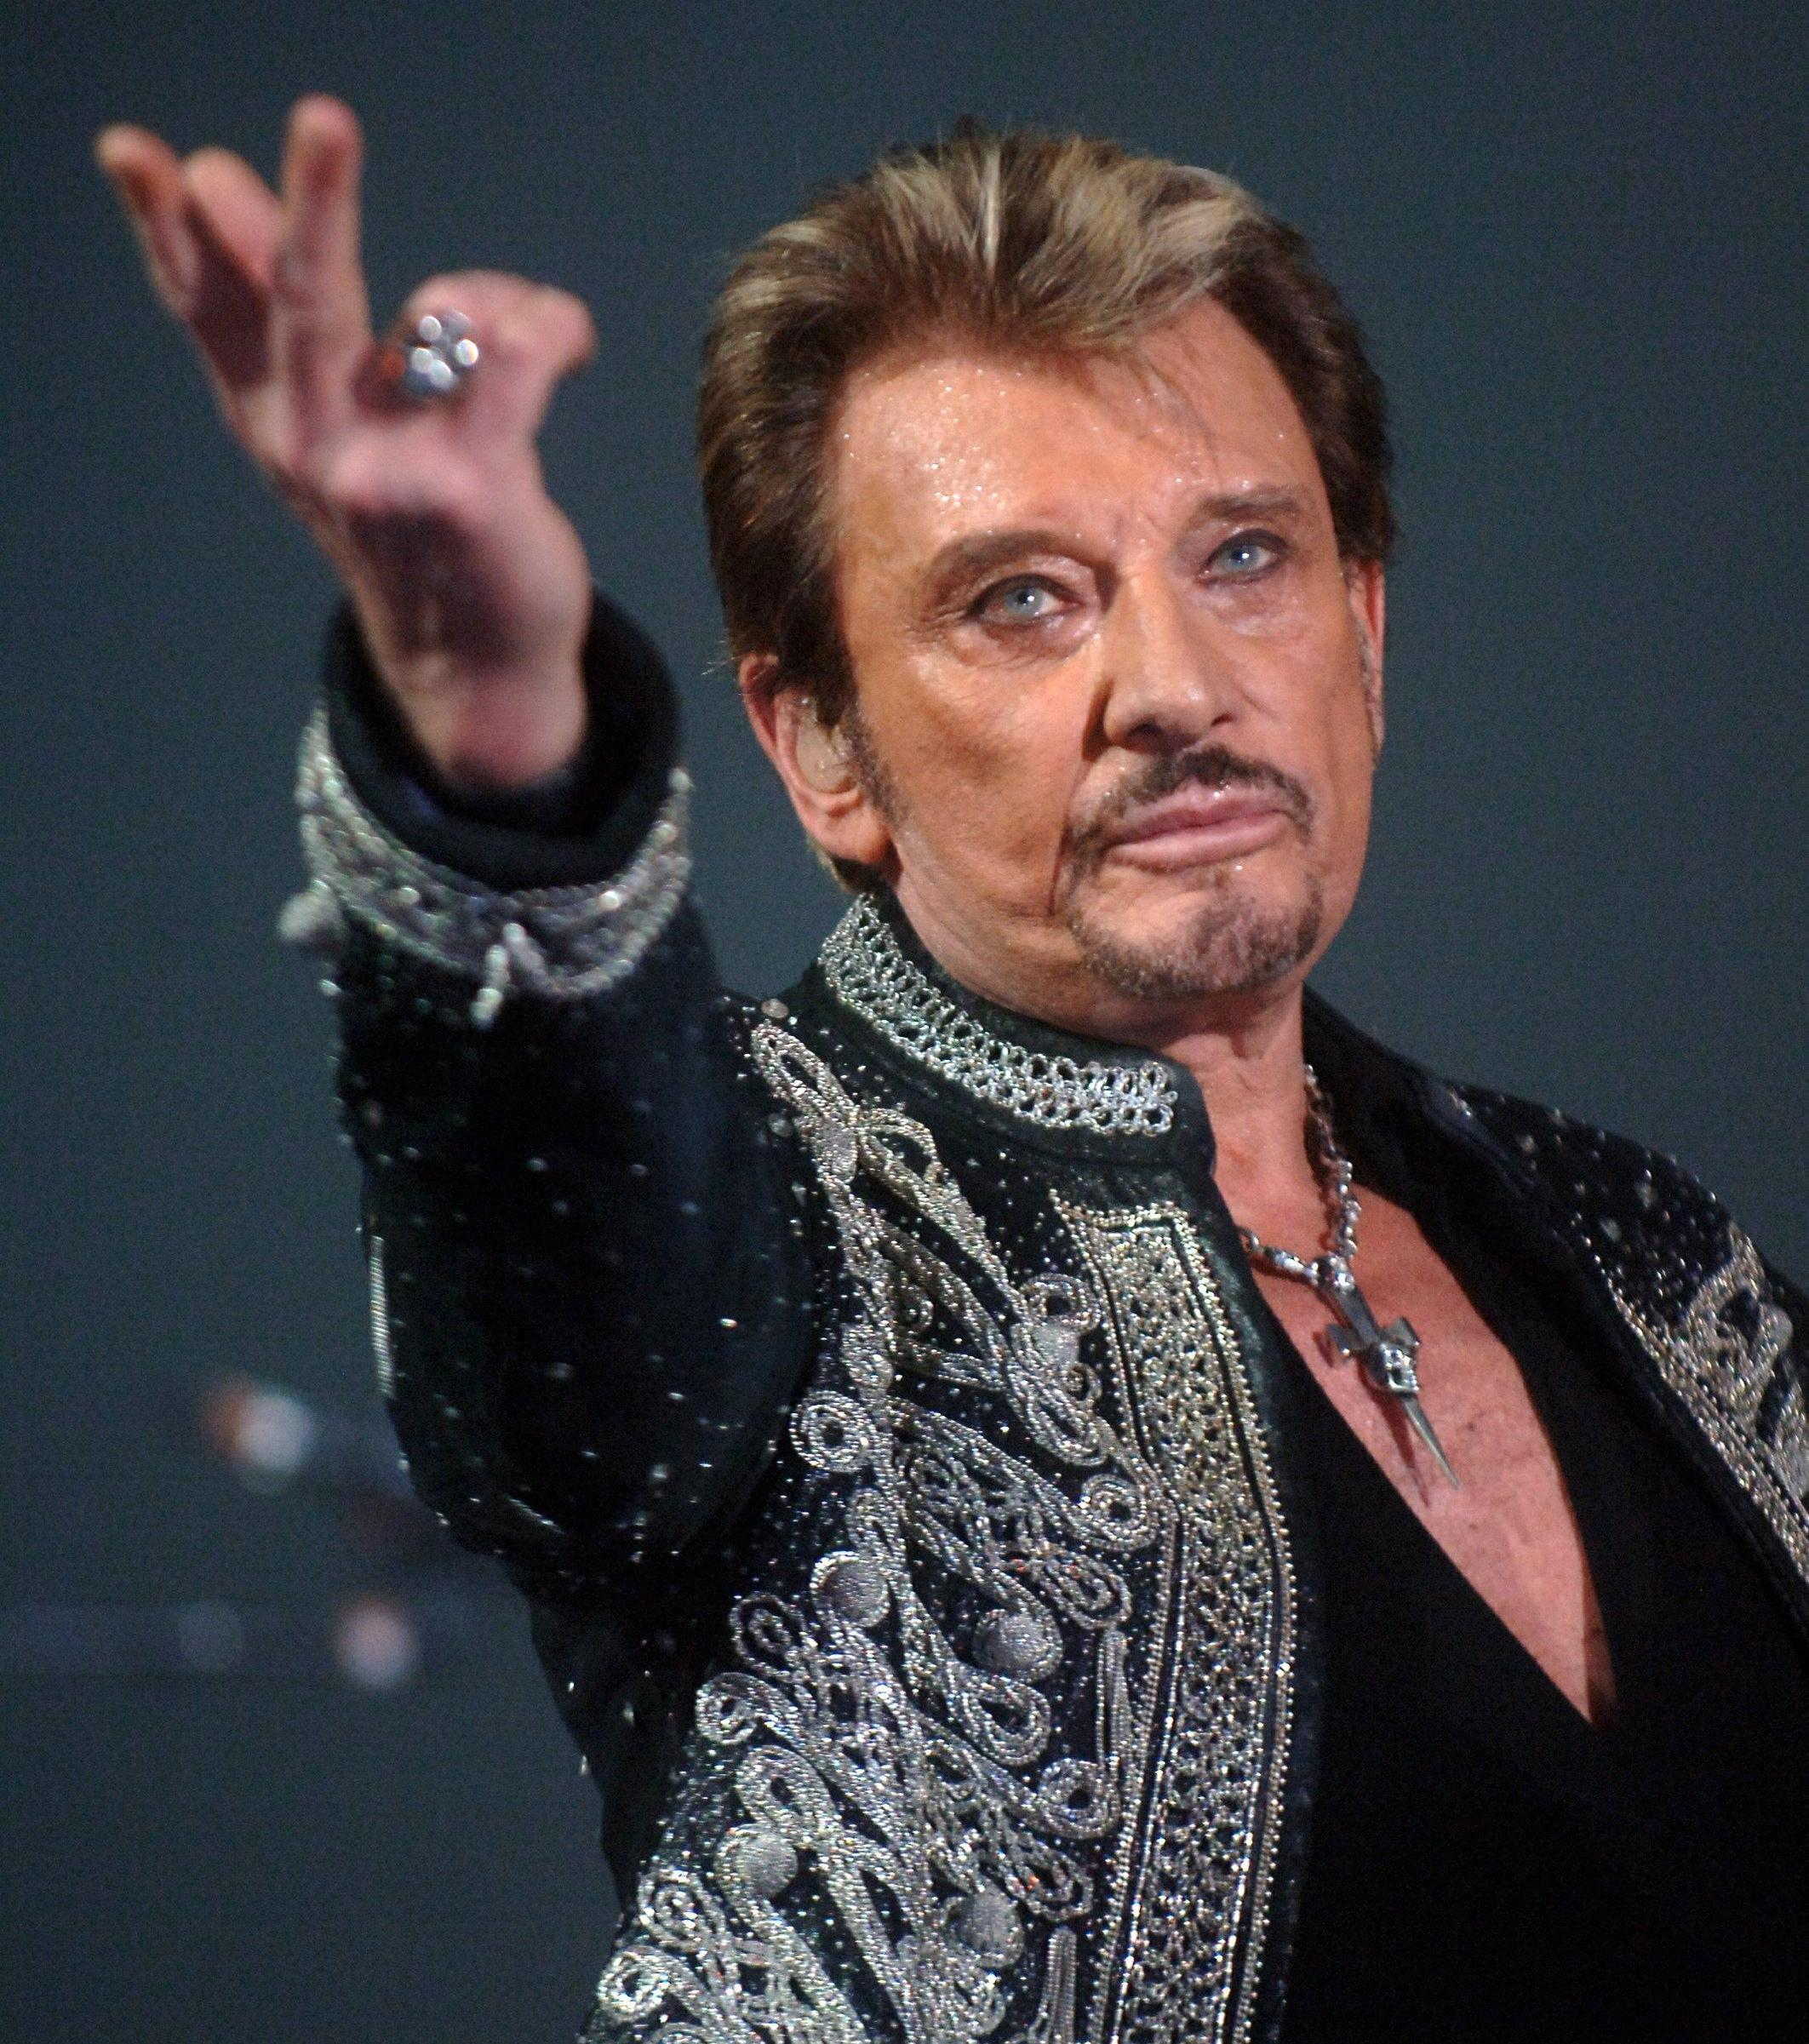 johnny-hallyday_130366_wide.jpg